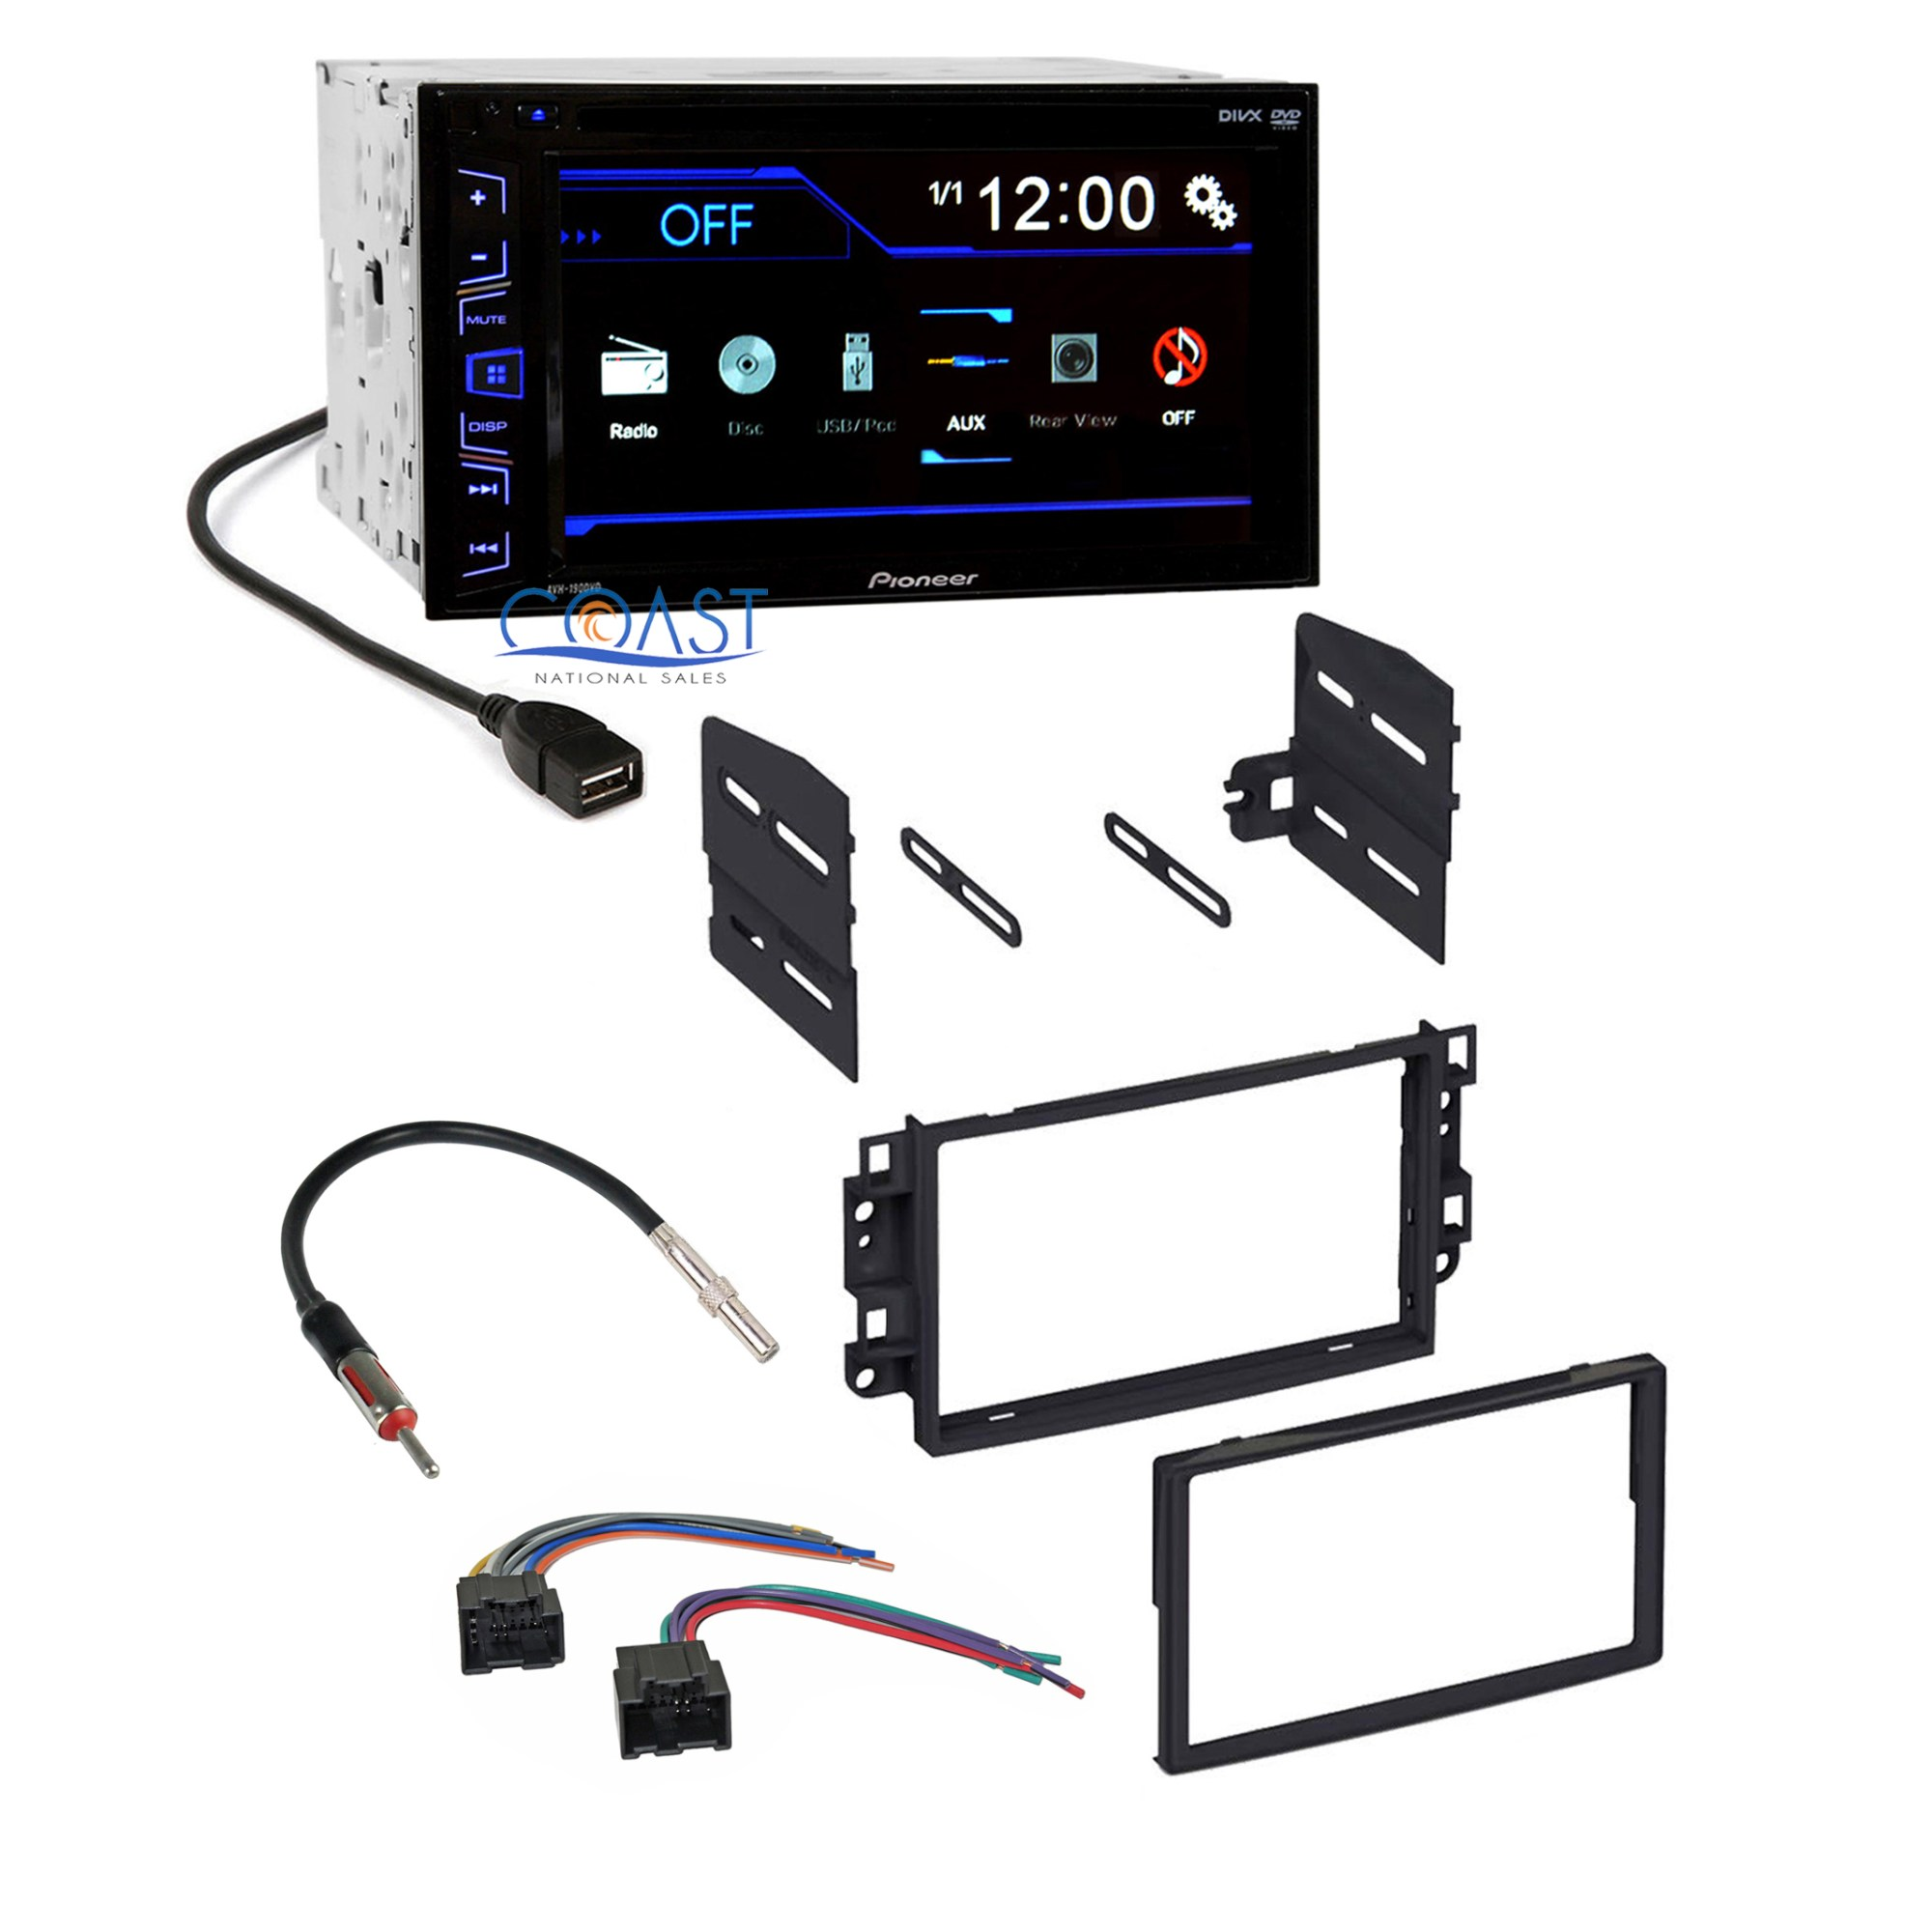 hight resolution of details about pioneer car radio stereo dash kit harness antenna for 2007 11 chevrolet aveo